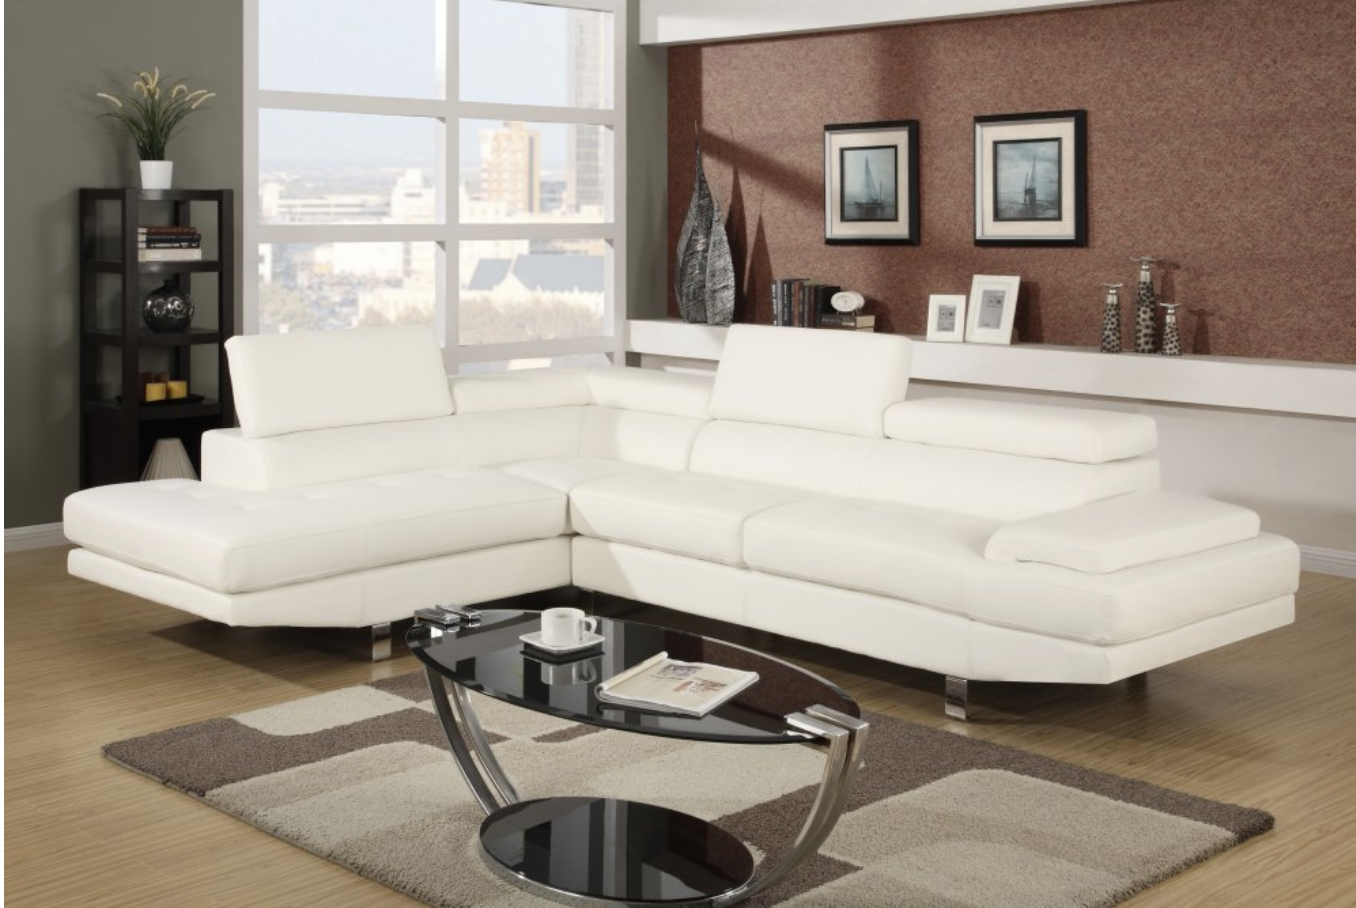 75 Modern Sectional Sofas For Small Spaces (2018) With Well Liked 110X90 Sectional Sofas (View 8 of 20)